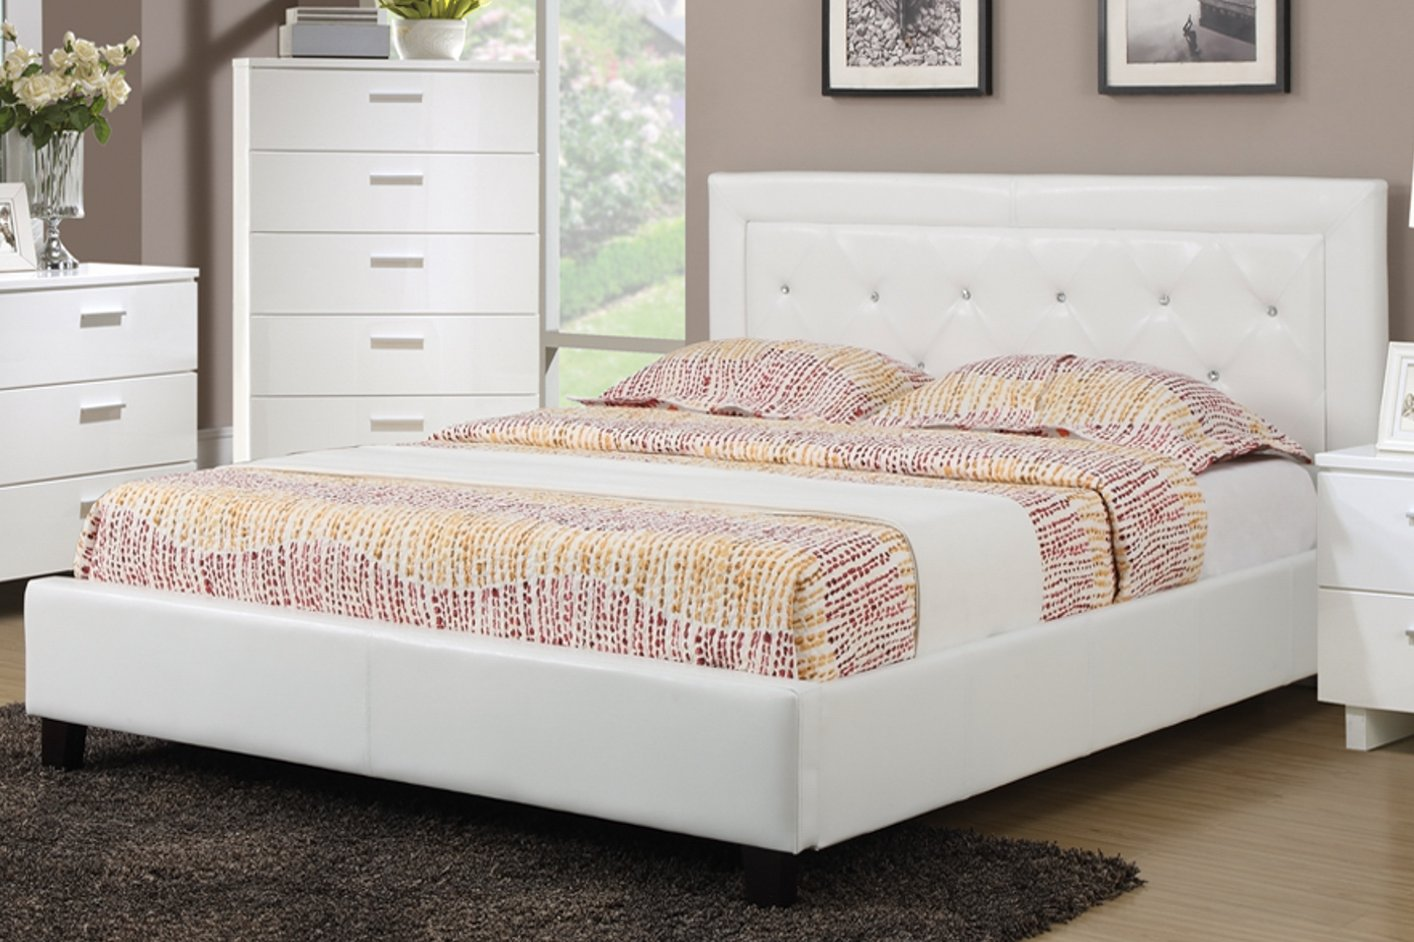 drawer l larger view kids bed school twin whitefinish mattress trundle house storage with full size ne captains